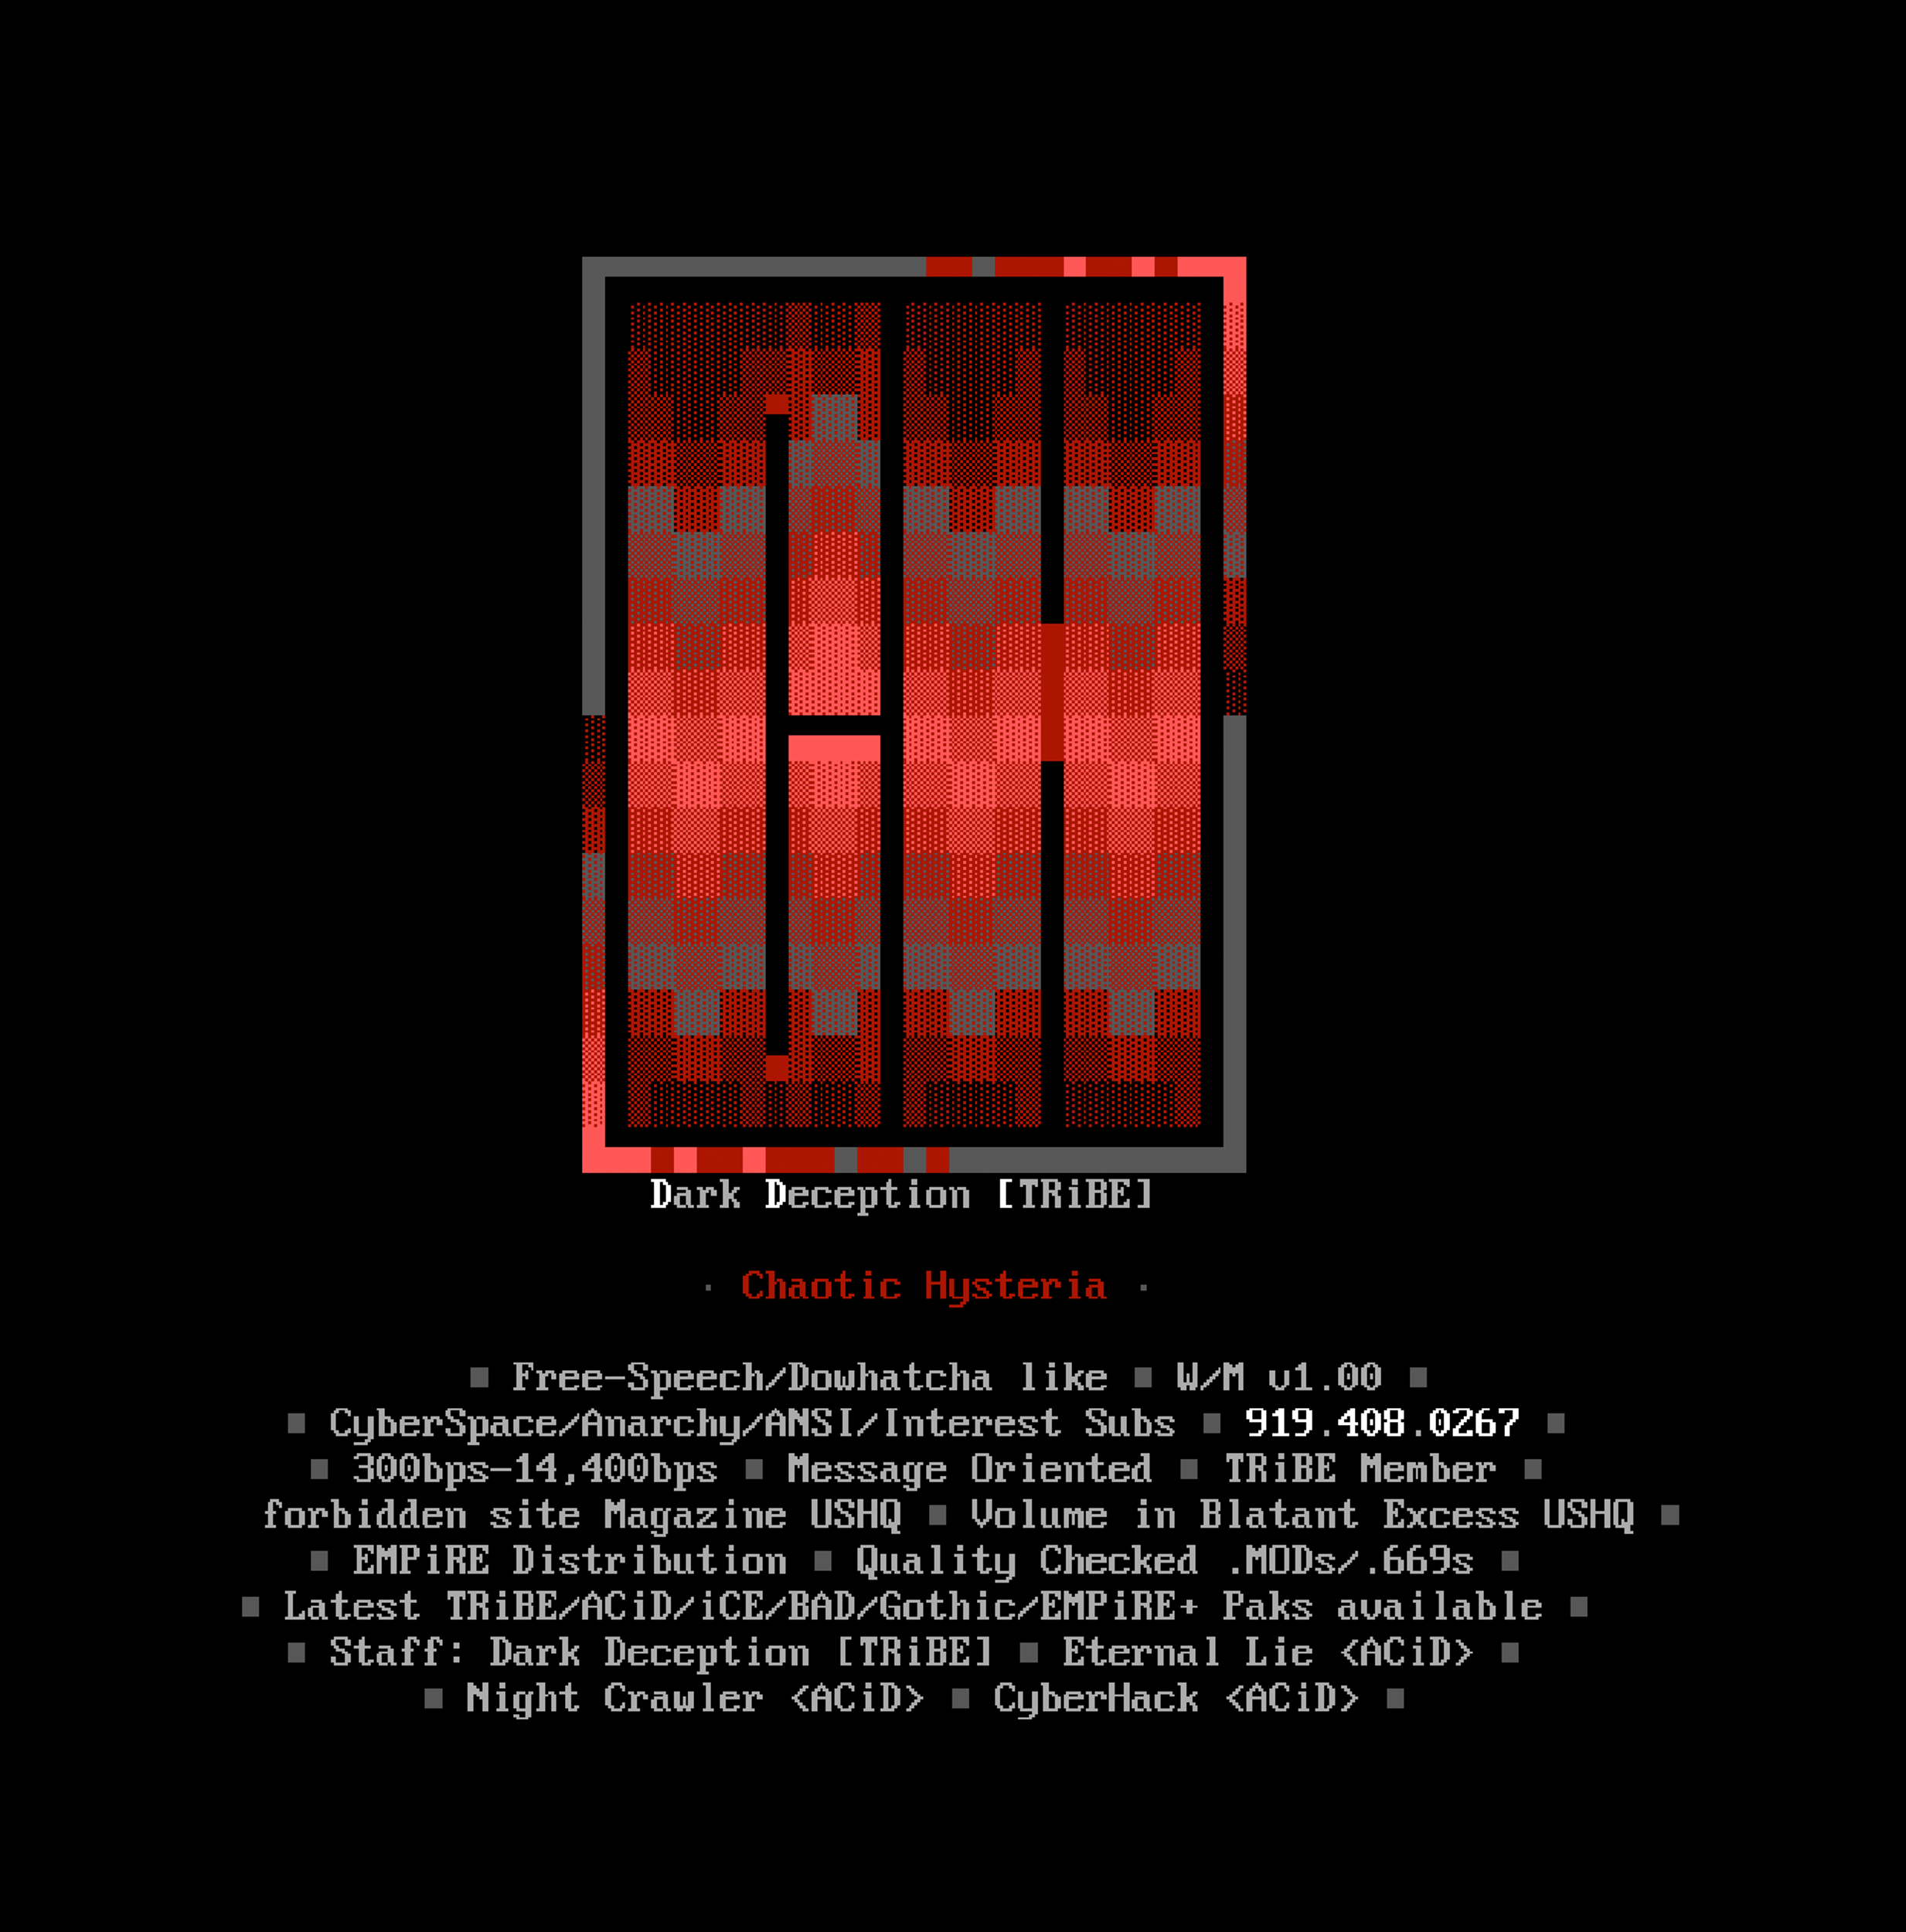 Chaotic Hysteria ANSI